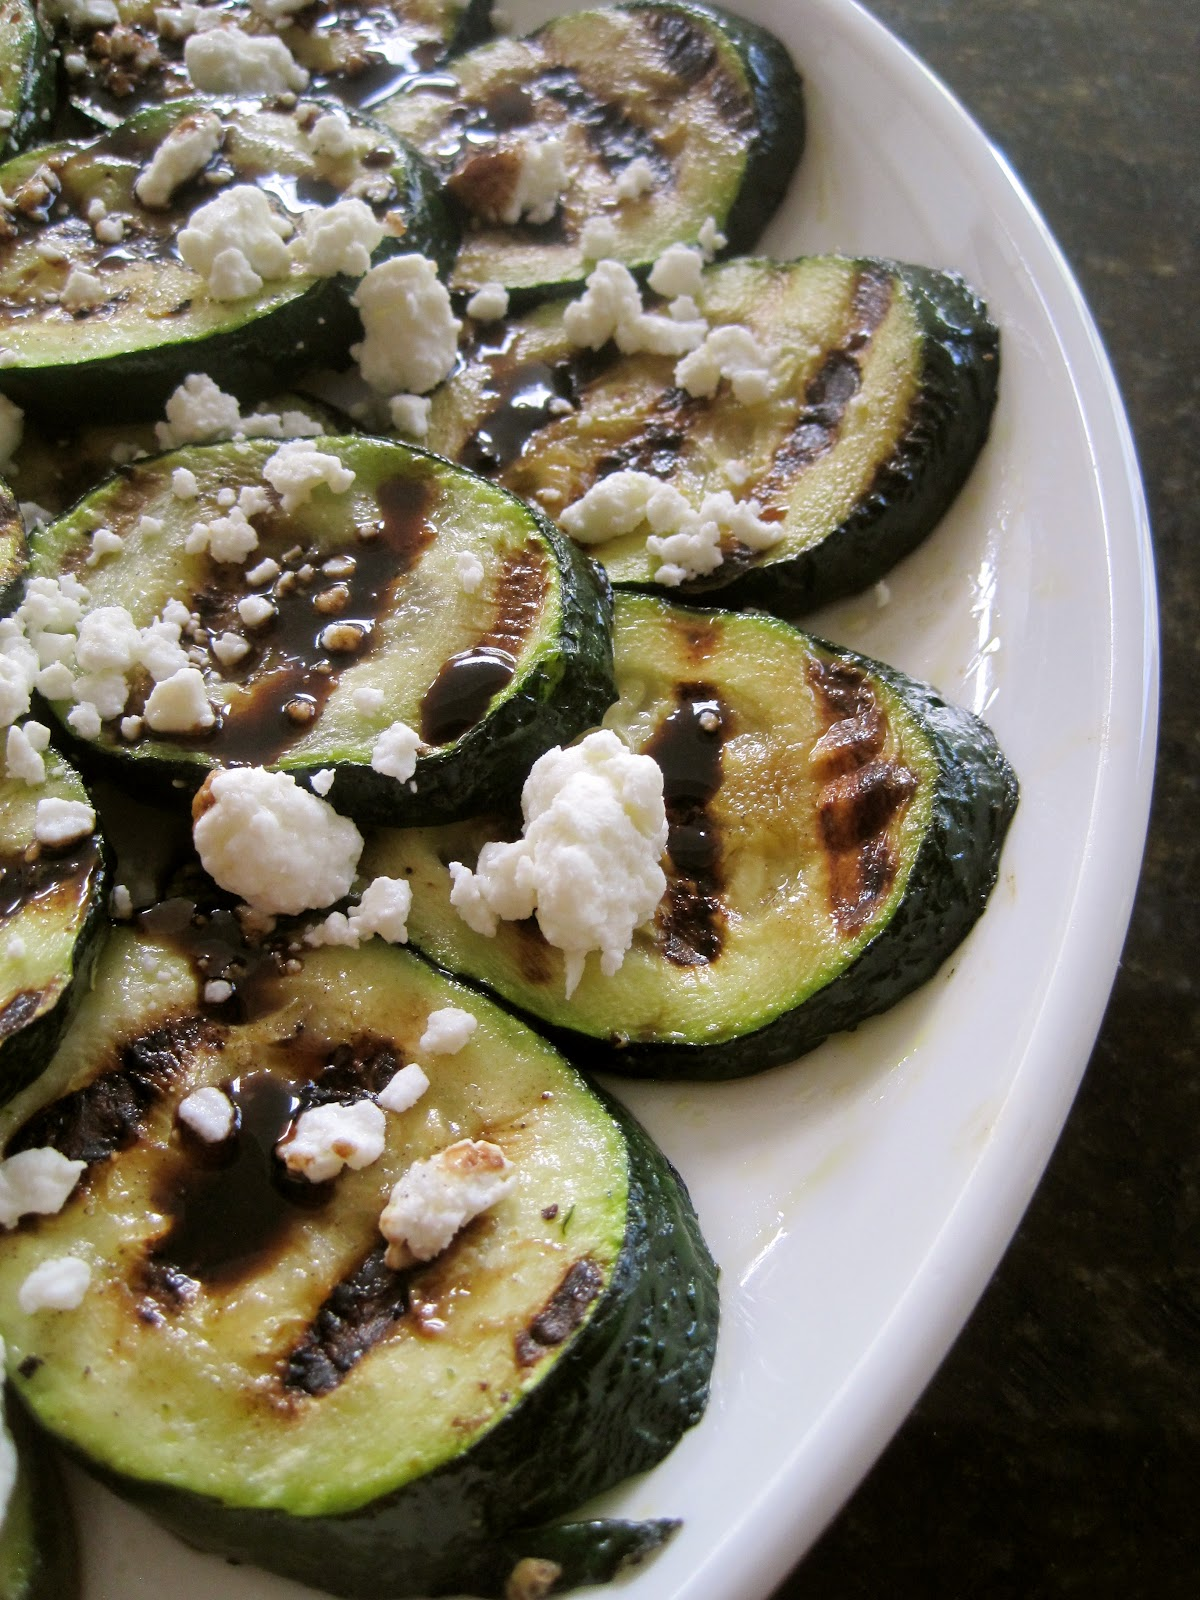 grilling is such a simple way to prepare veggies and it seems to ...